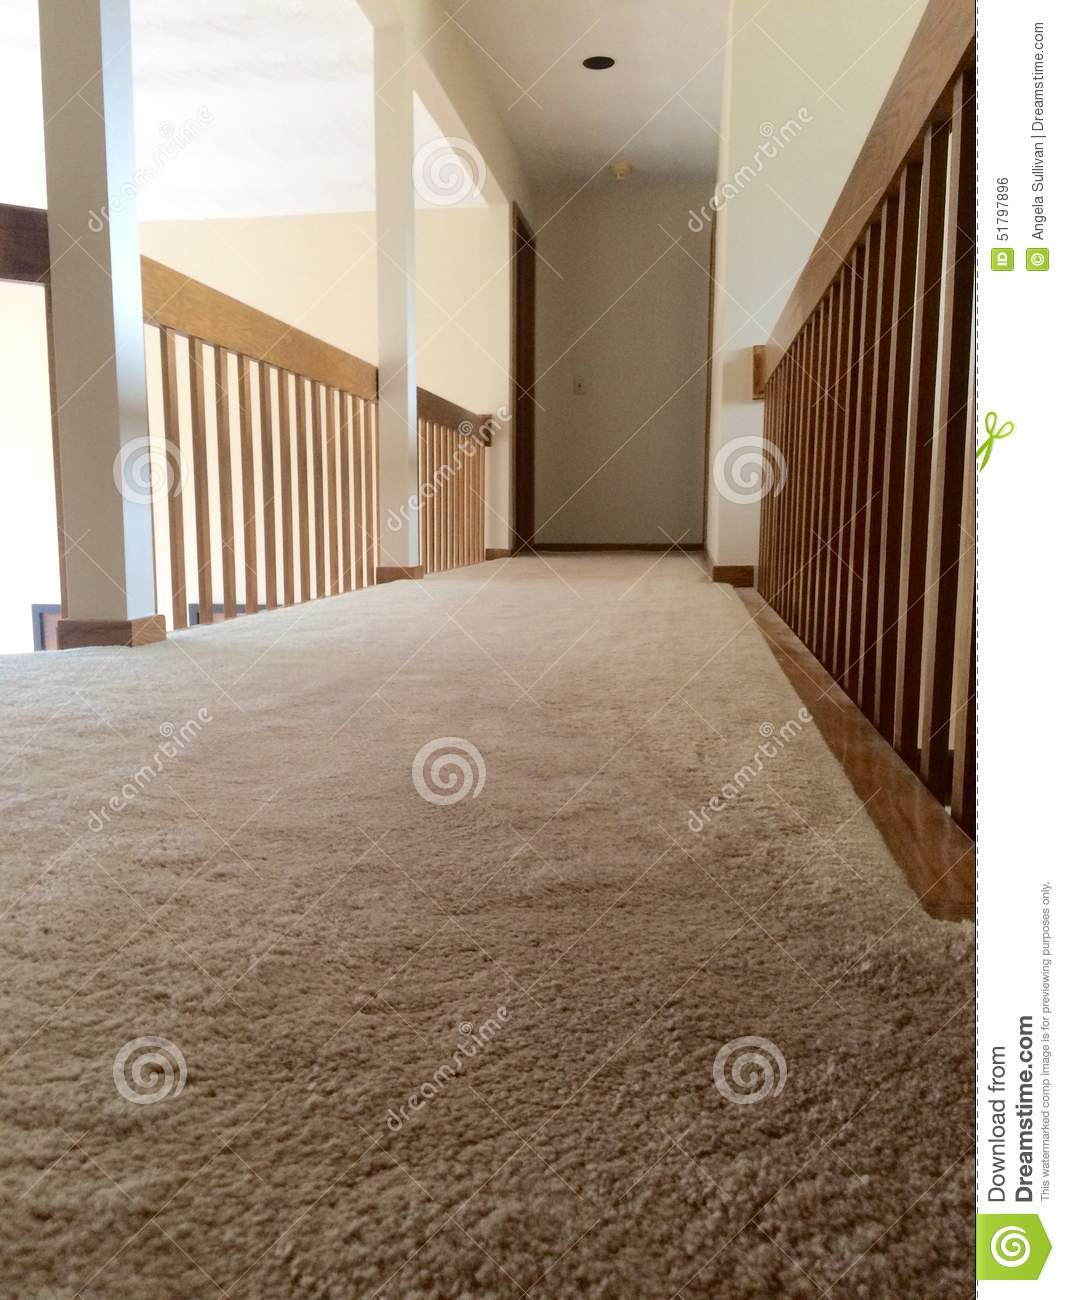 Cleaning A Carpet Images Commercial Or Residential